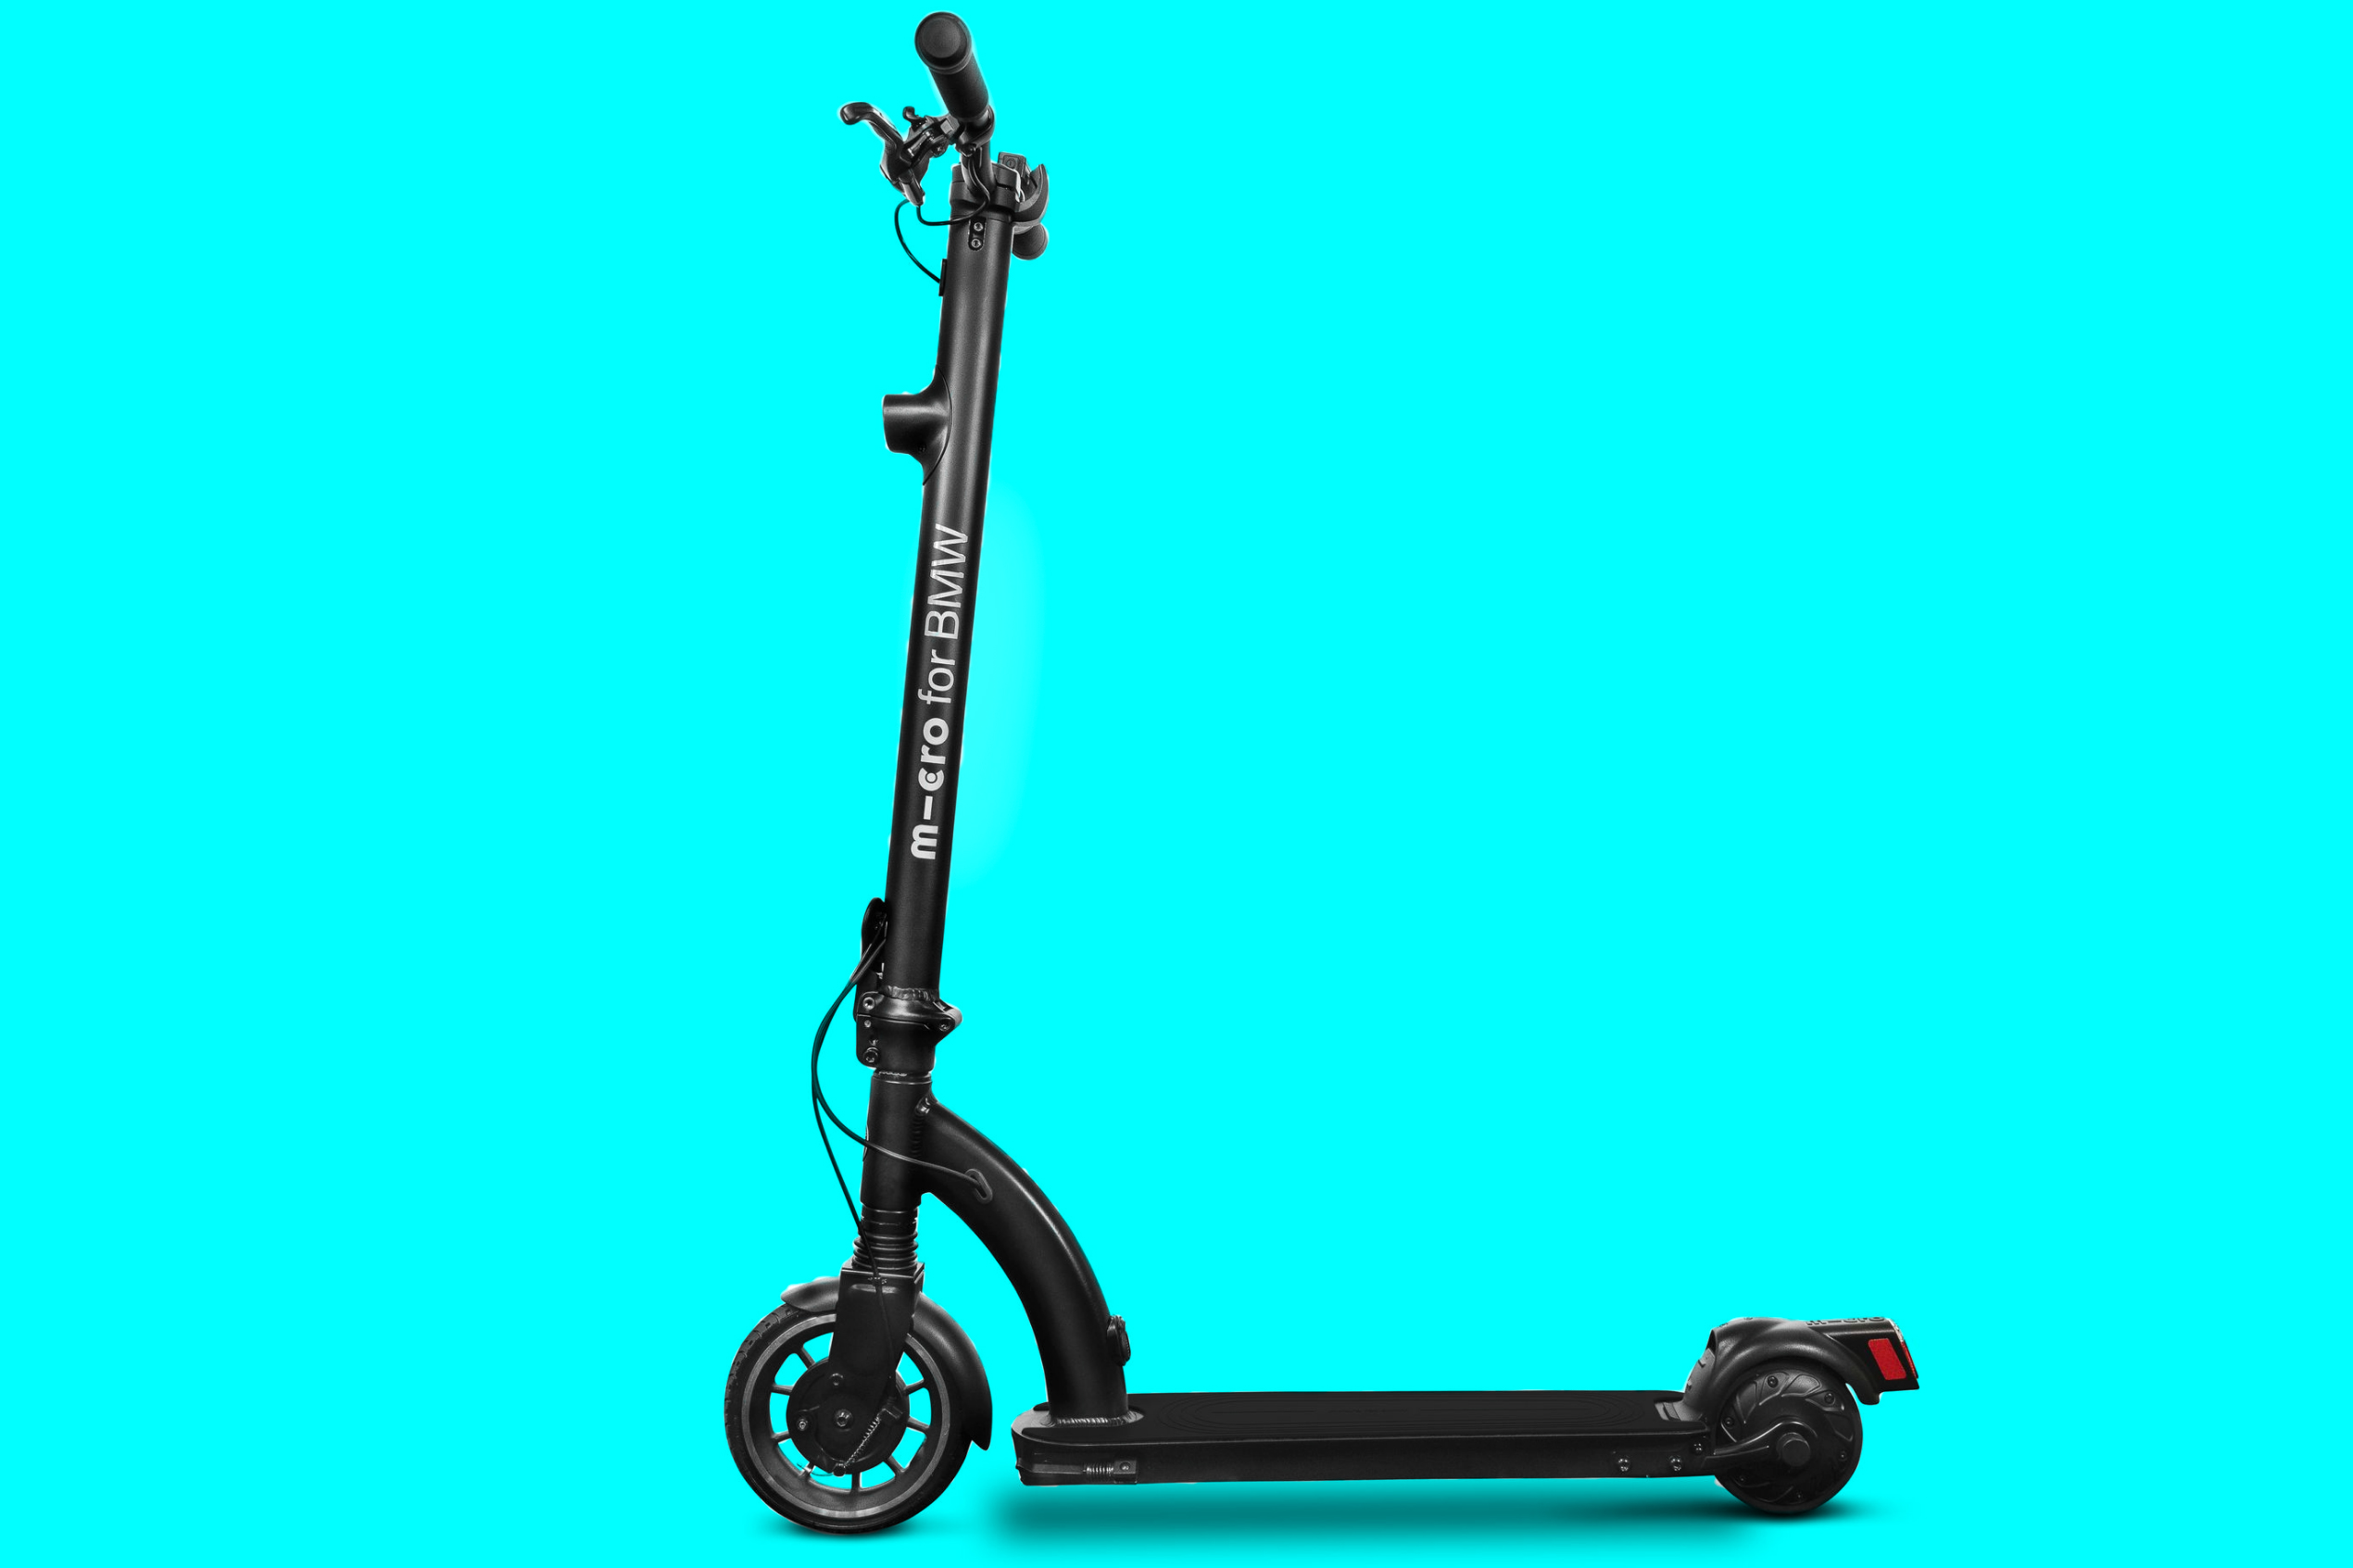 BMW is now selling an $890 electric scooter